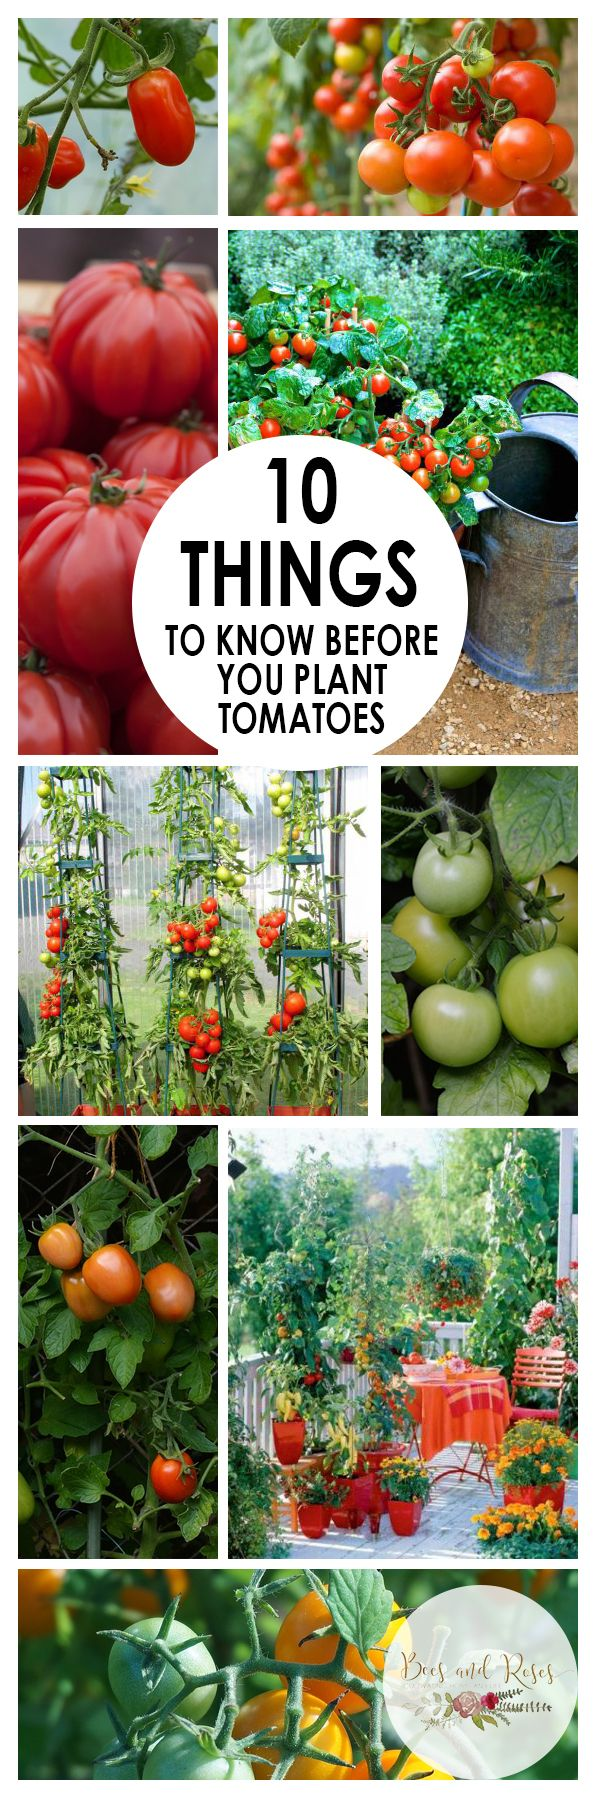 10 Things to Know Before You Plant Tomatoes| Planting Tomatoes, Tomato Growing Tips and Tricks, Vegetable Gardening Tricks, How to Grow Tomatoes, Easy Gardening Tips, Growing Tomatoes for Beginners, Gardening Tips and Tricks